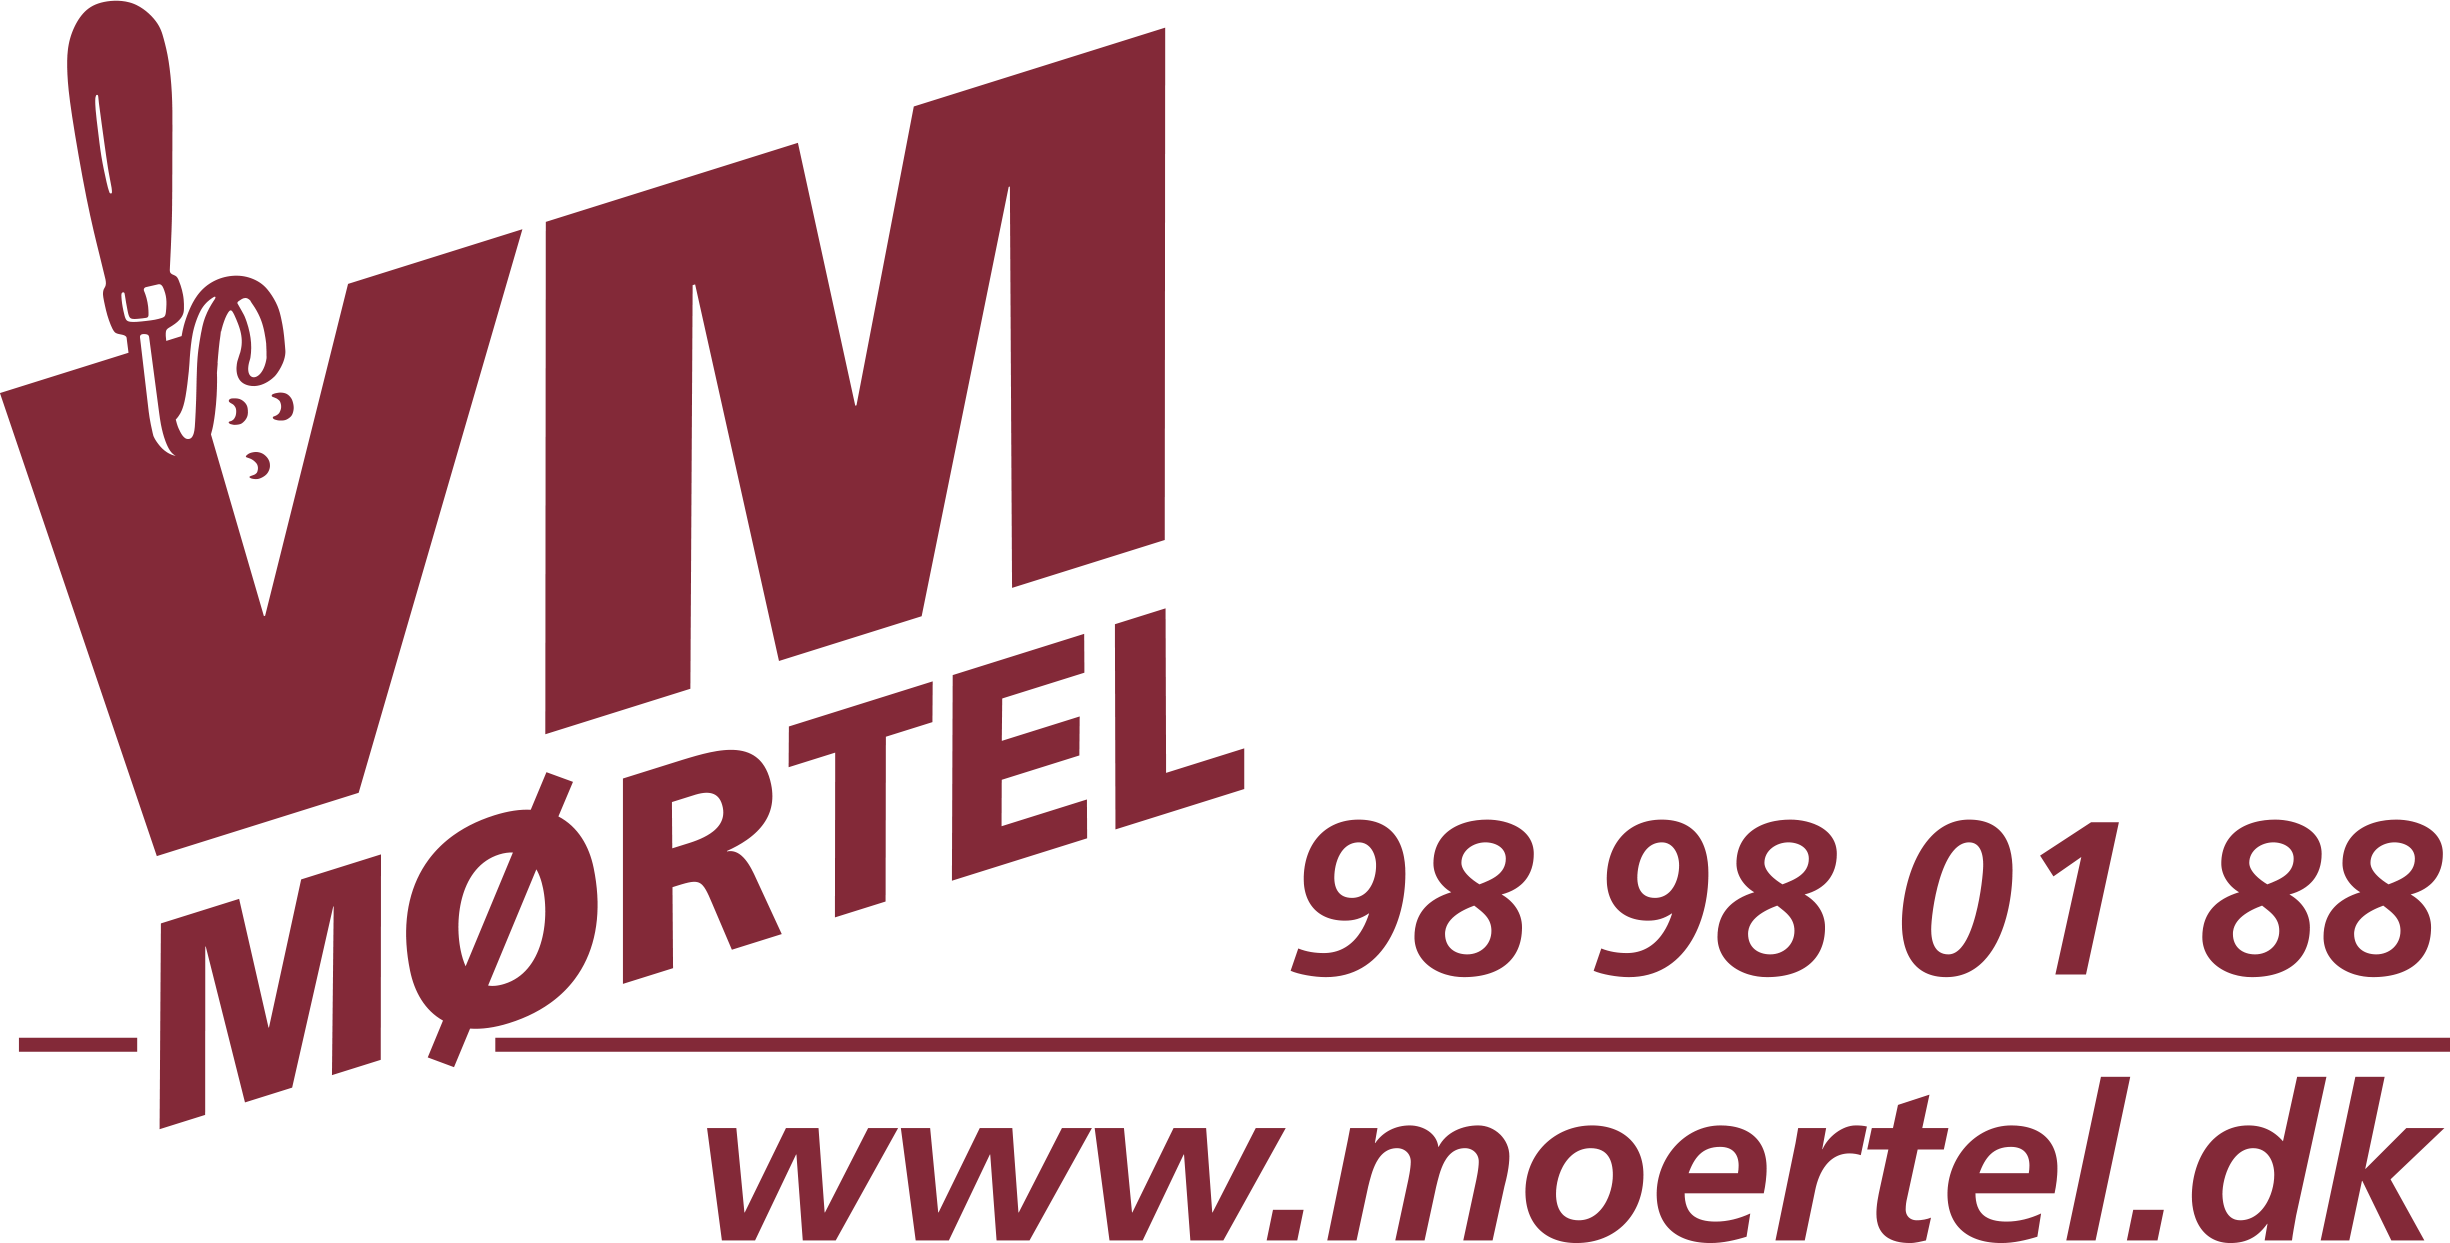 VM Mrtel alternativt logo